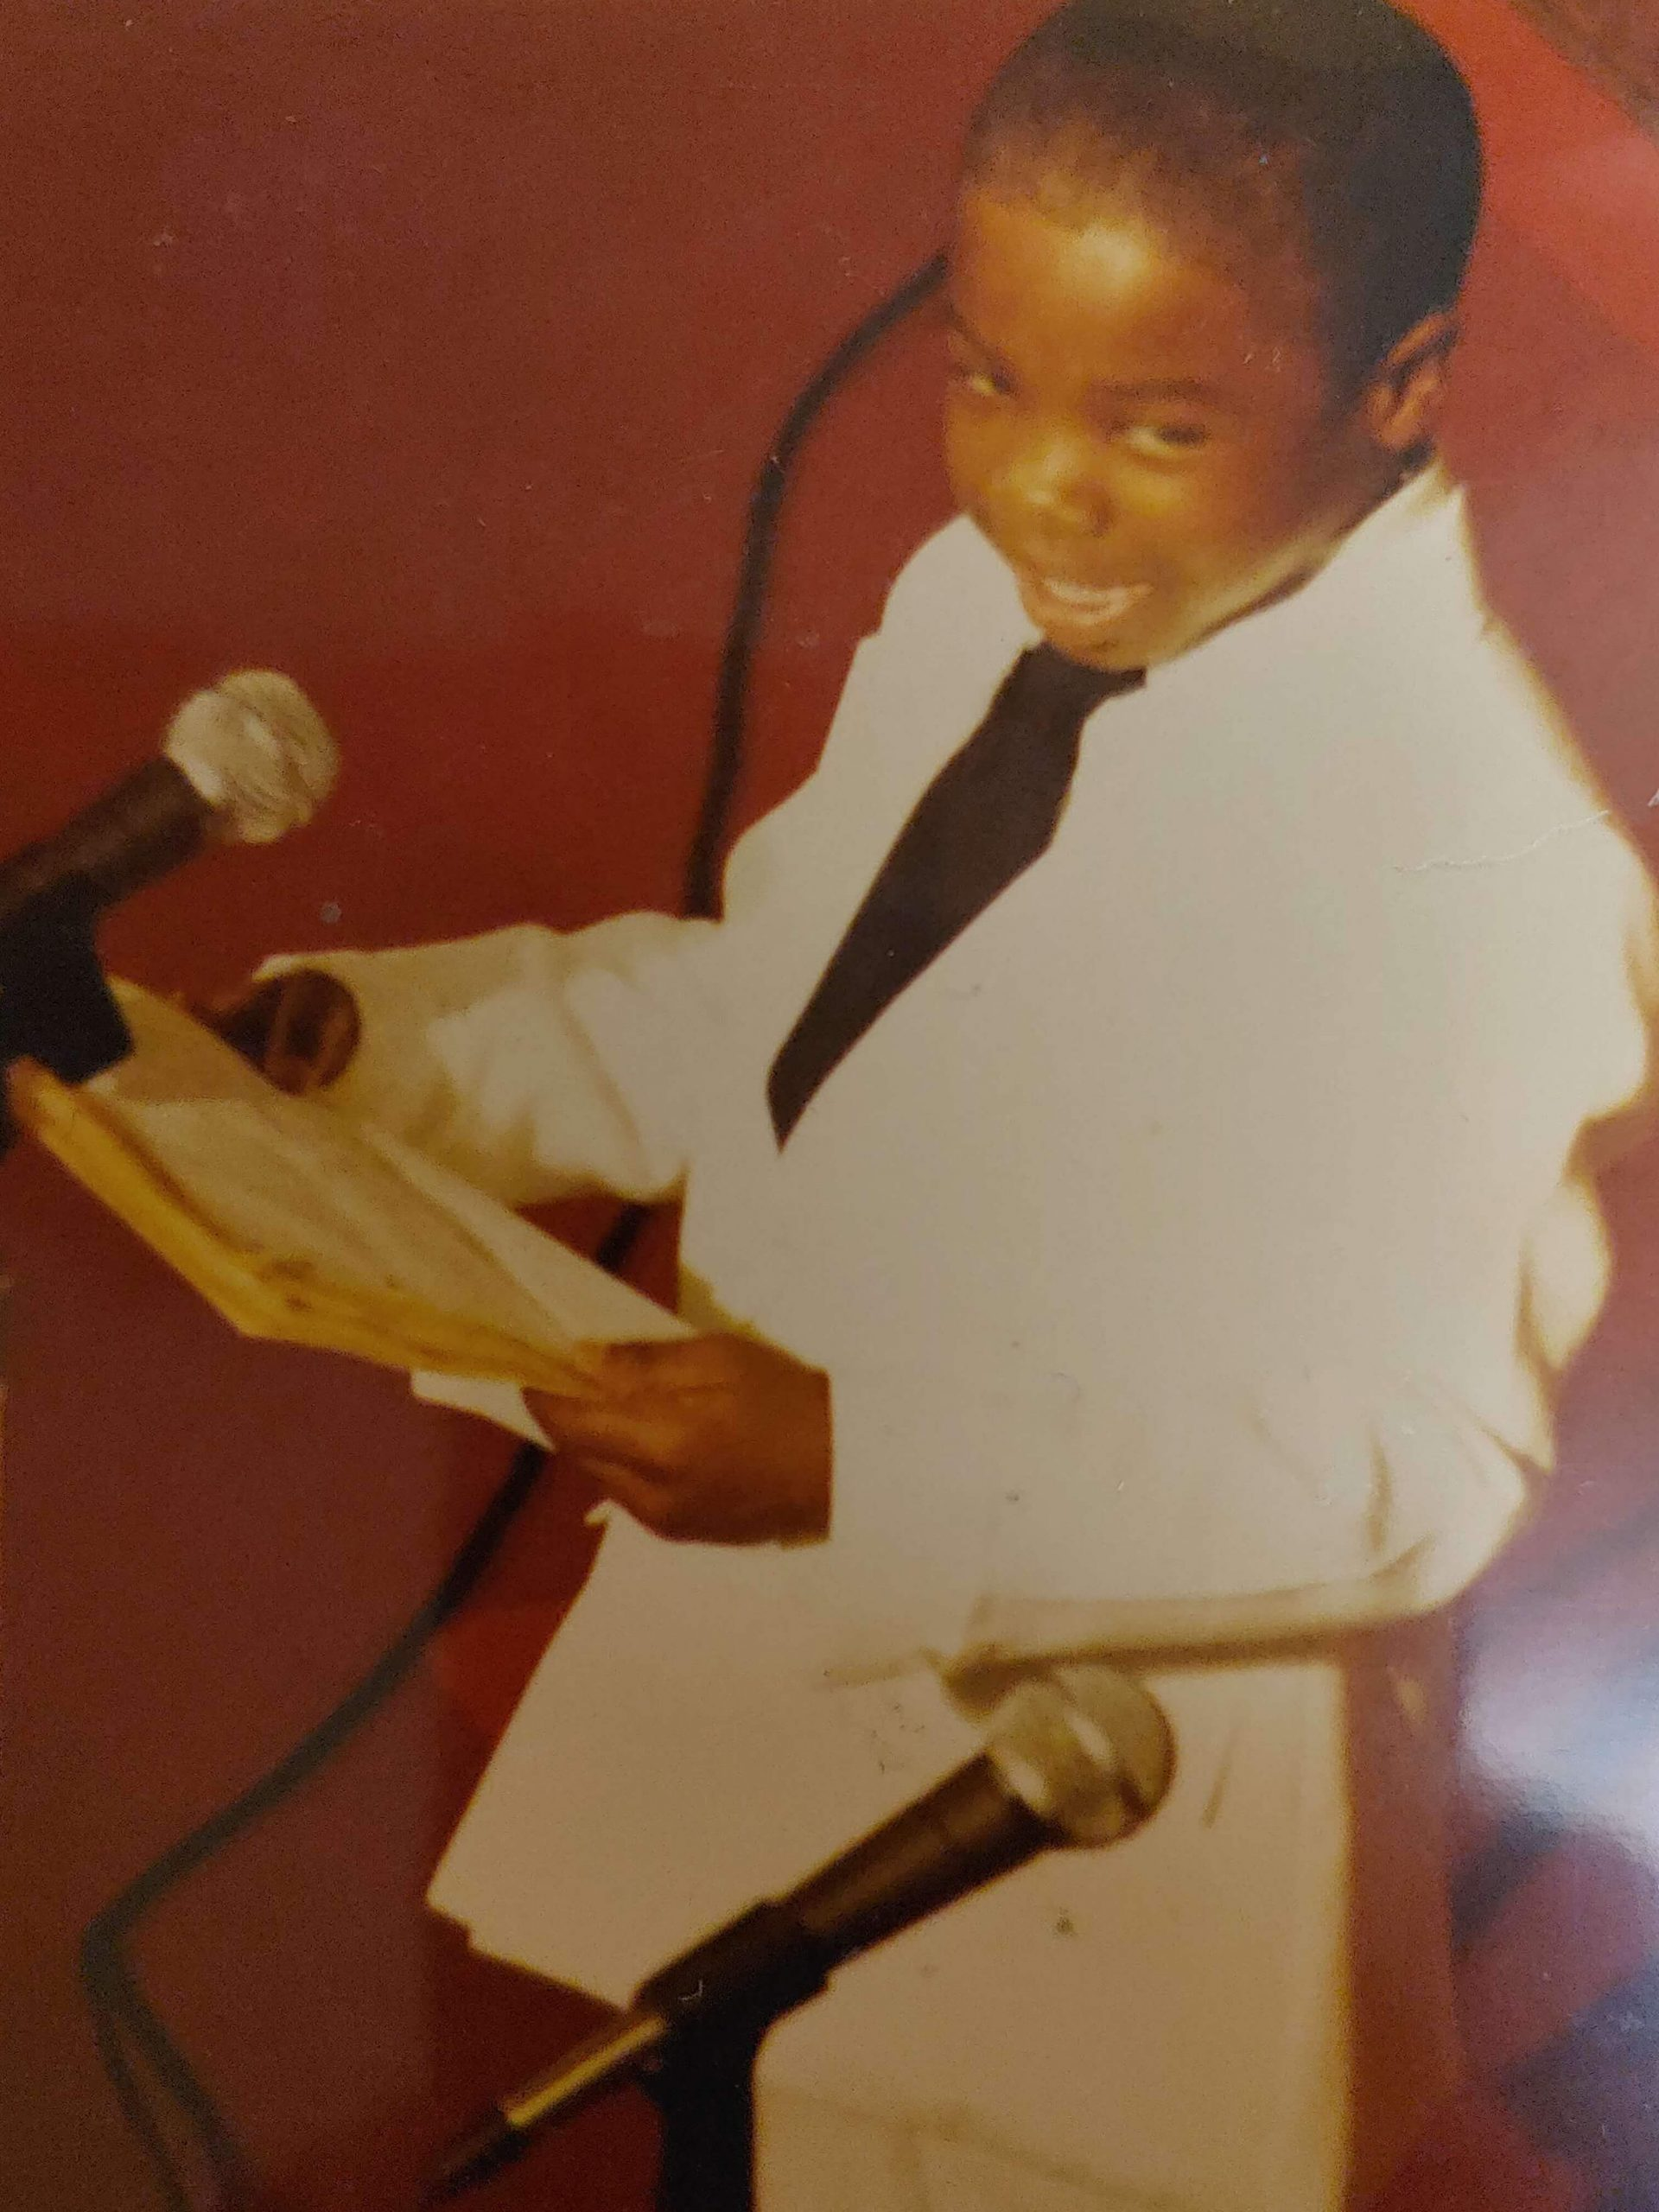 Image of Rodney C. Burris as Toddler in Suit